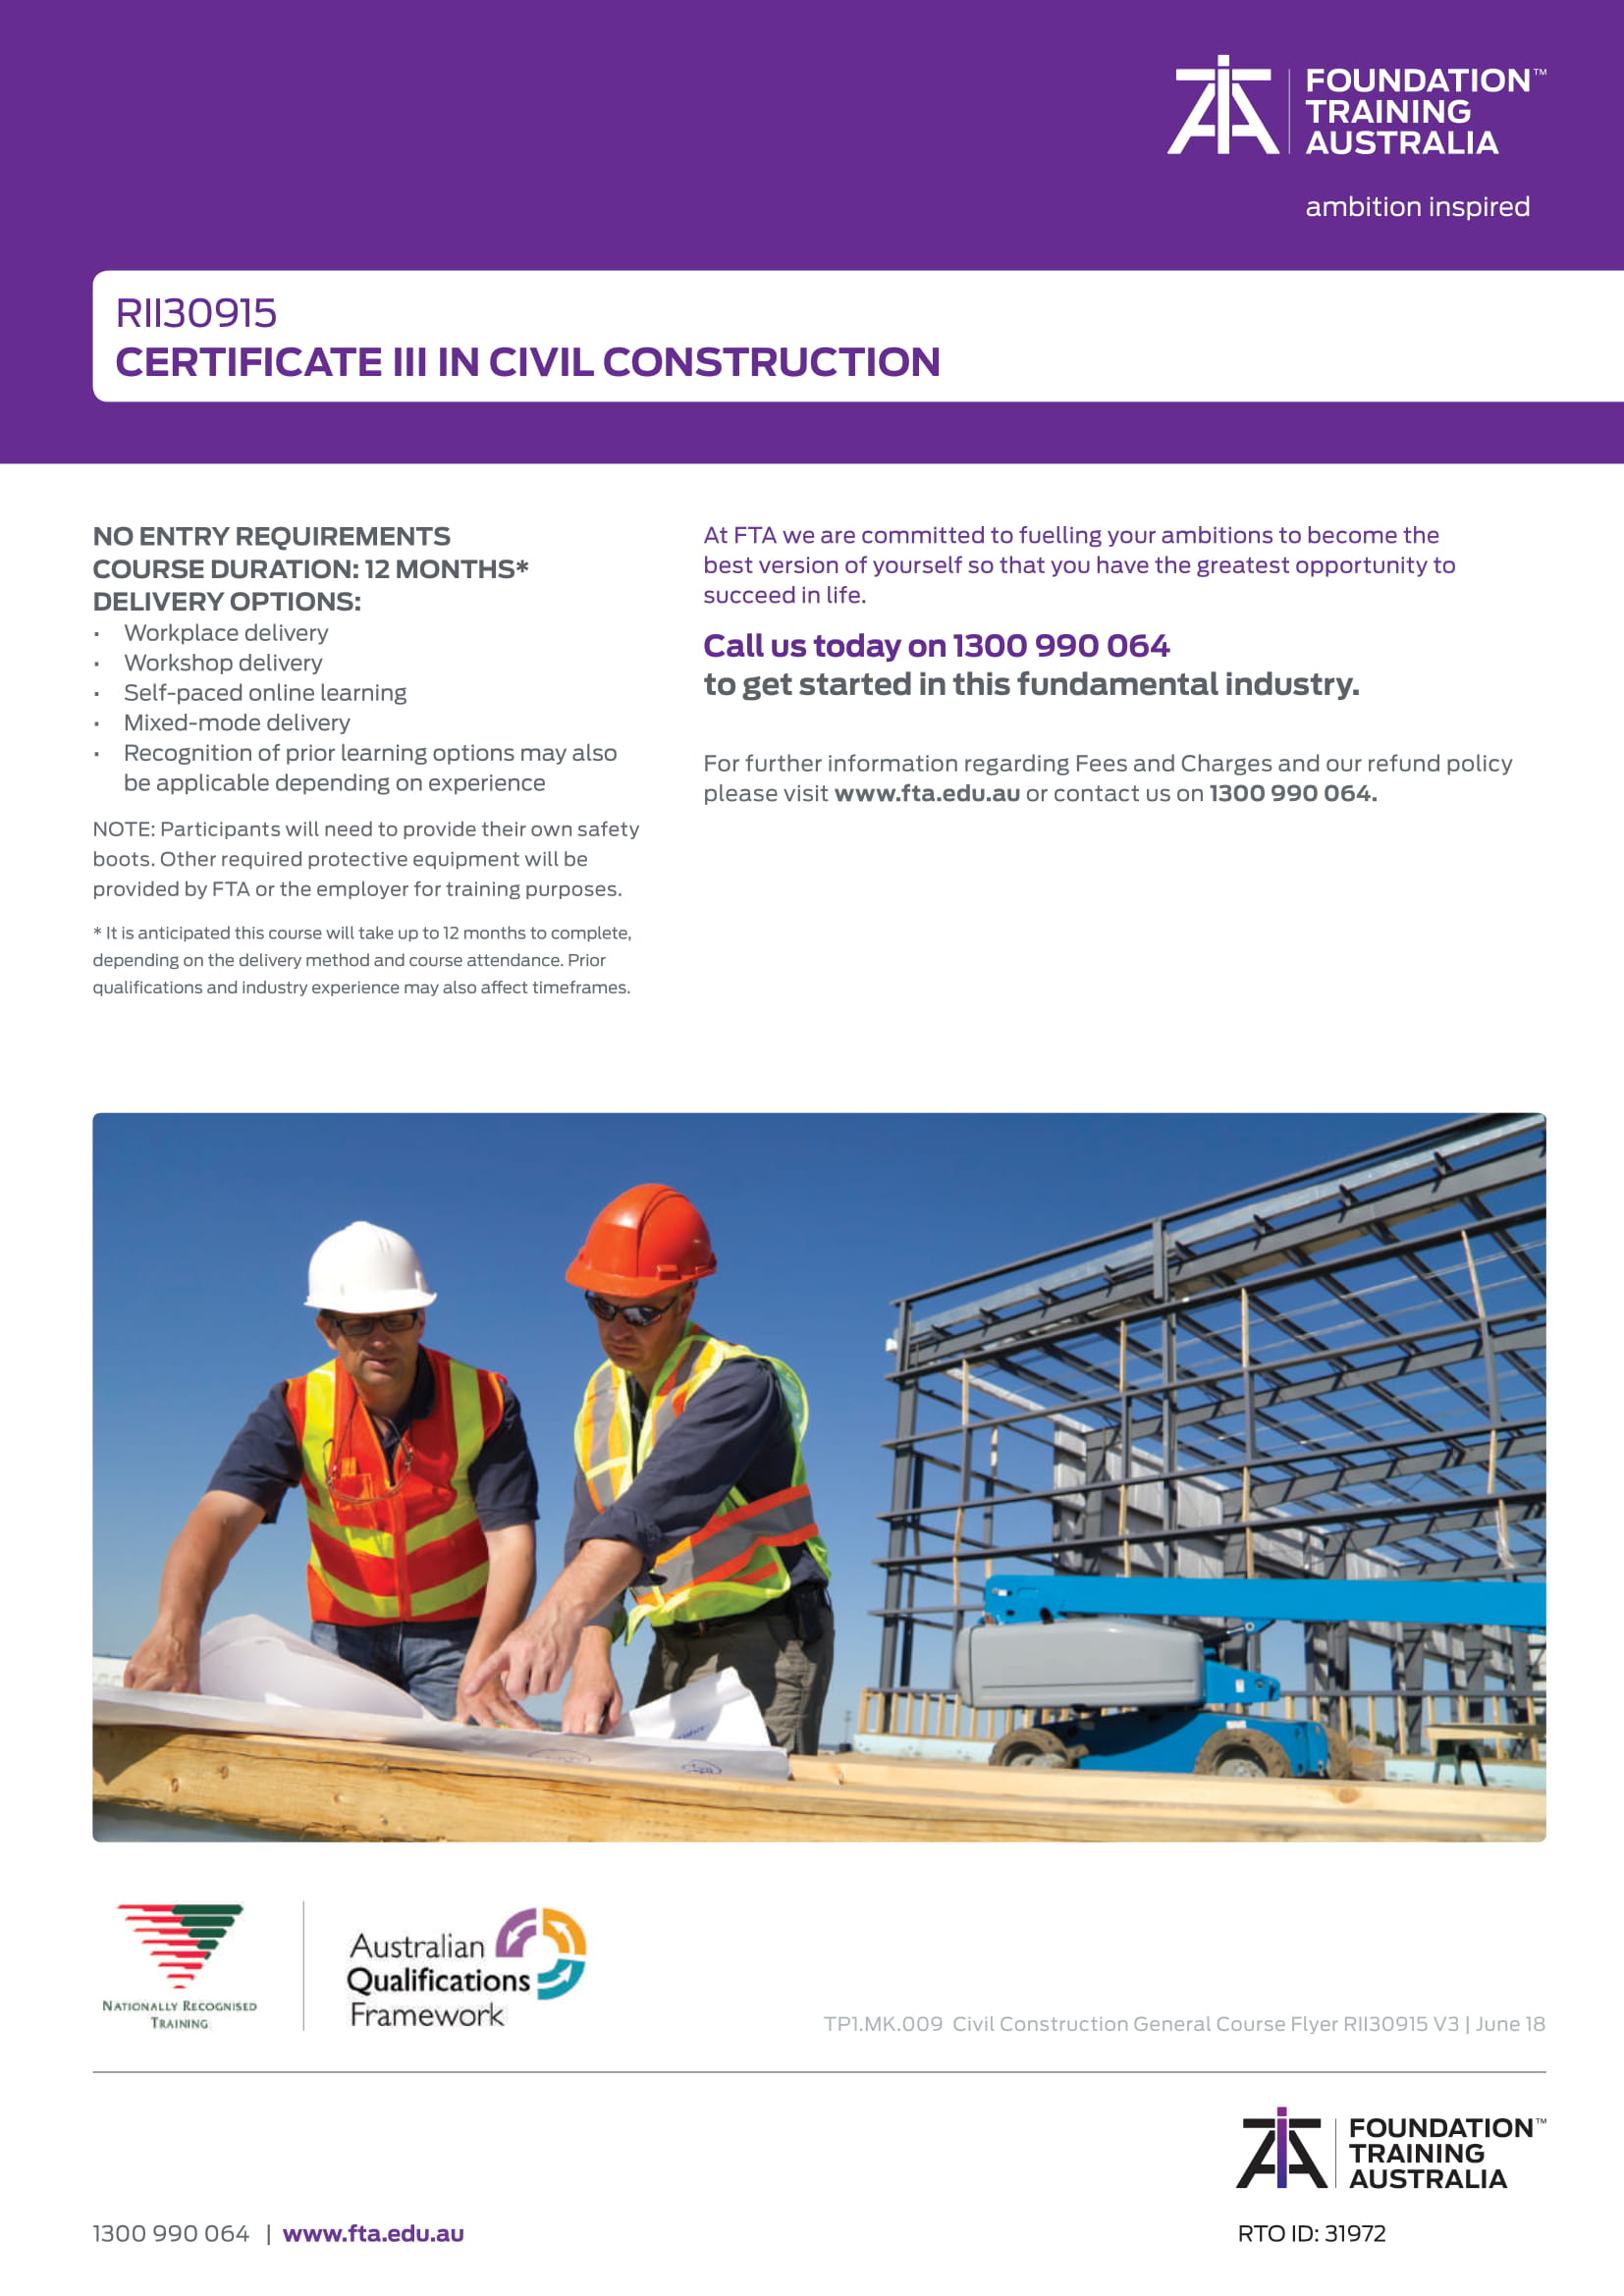 https://www.fta.edu.au/wp-content/uploads/2020/06/TP1.MK_.009-Civil-Construction-General-Course-Flyer-RII30915-V3-DIGITAL.compressed-2.jpg